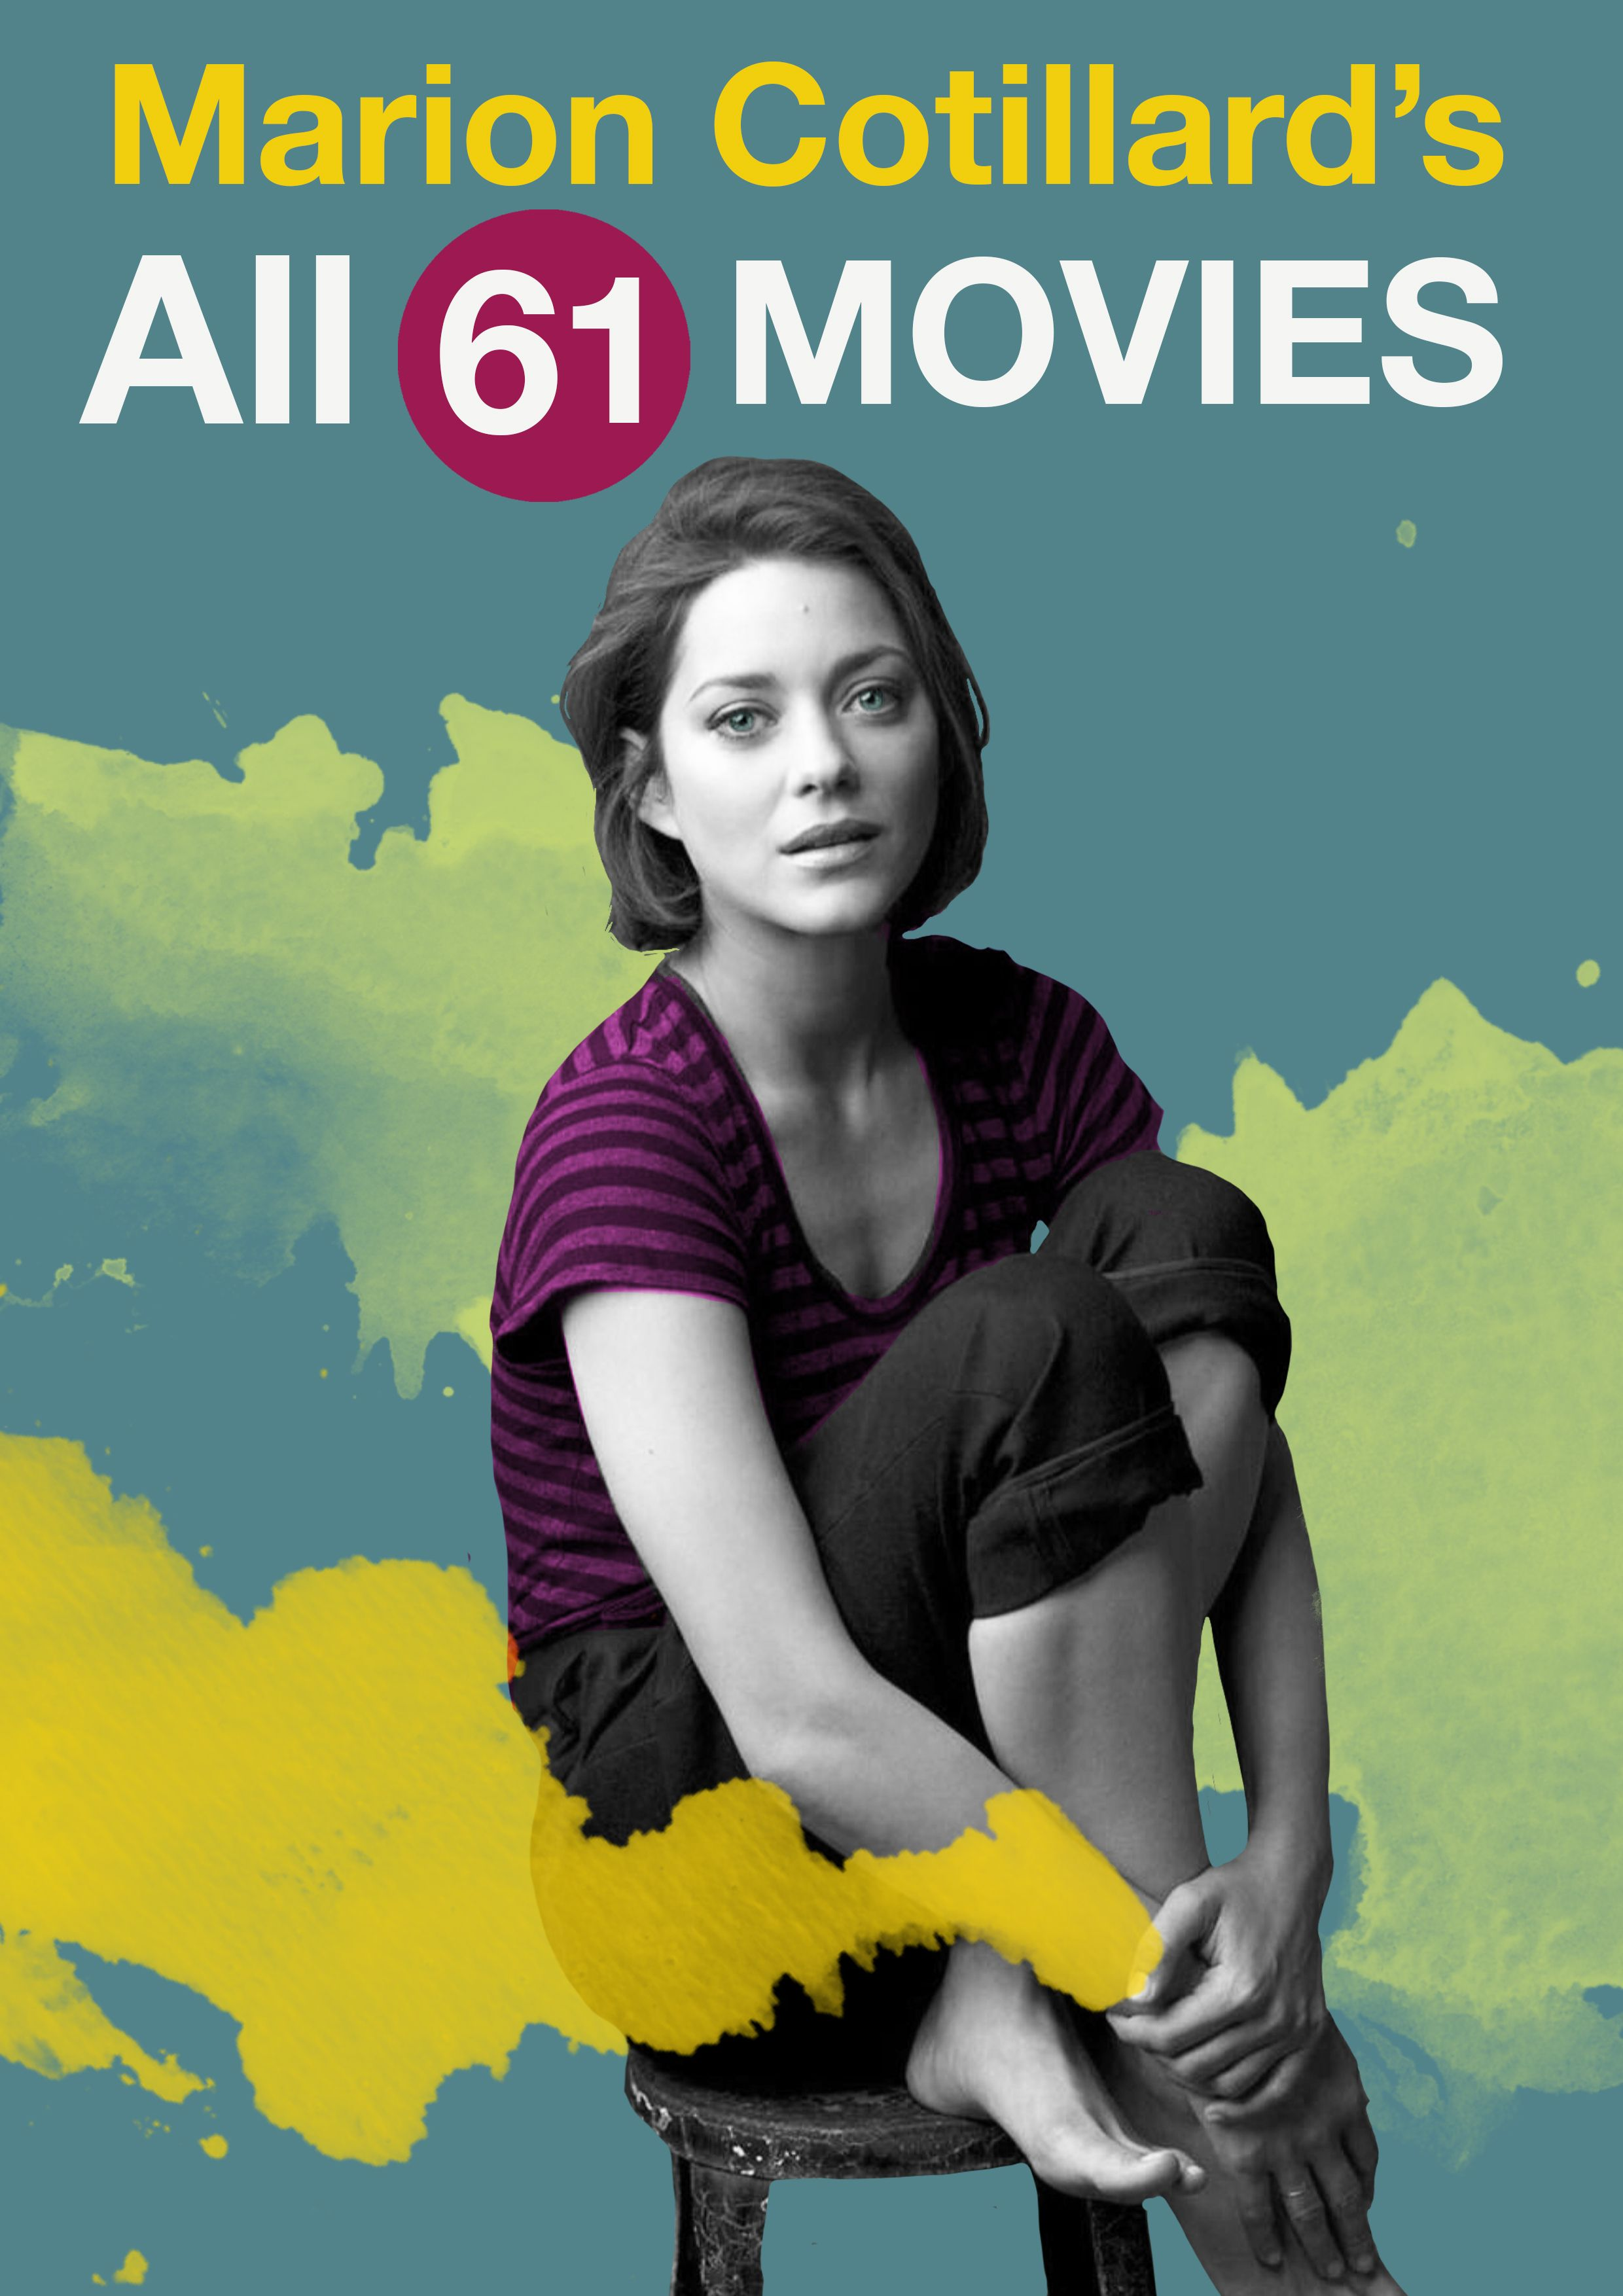 Big Fan Of Marion Cotillard Check The Complete List With All Her